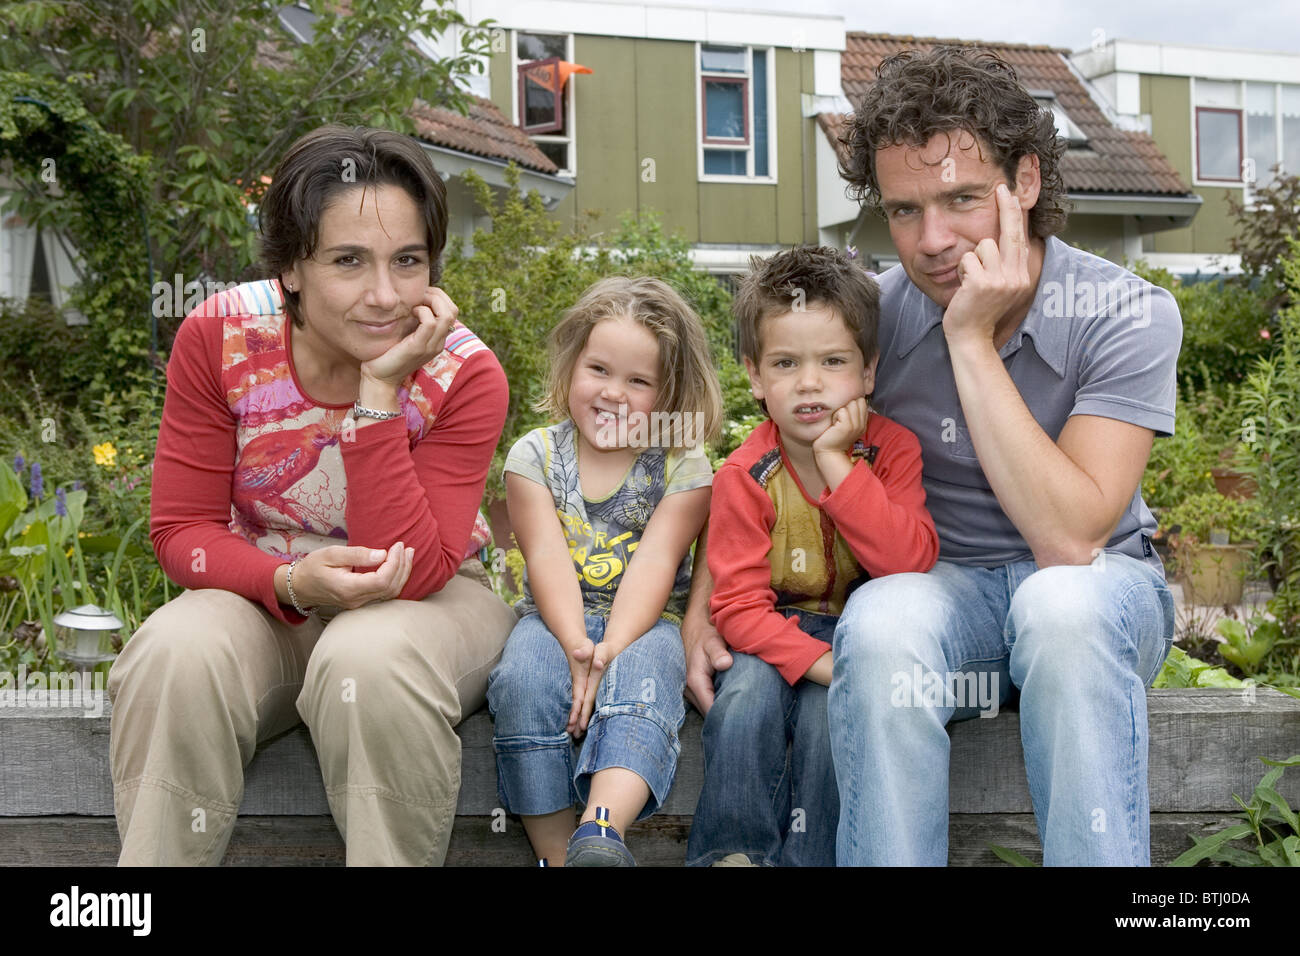 nuclear family portrait stock photo 32357622 alamy